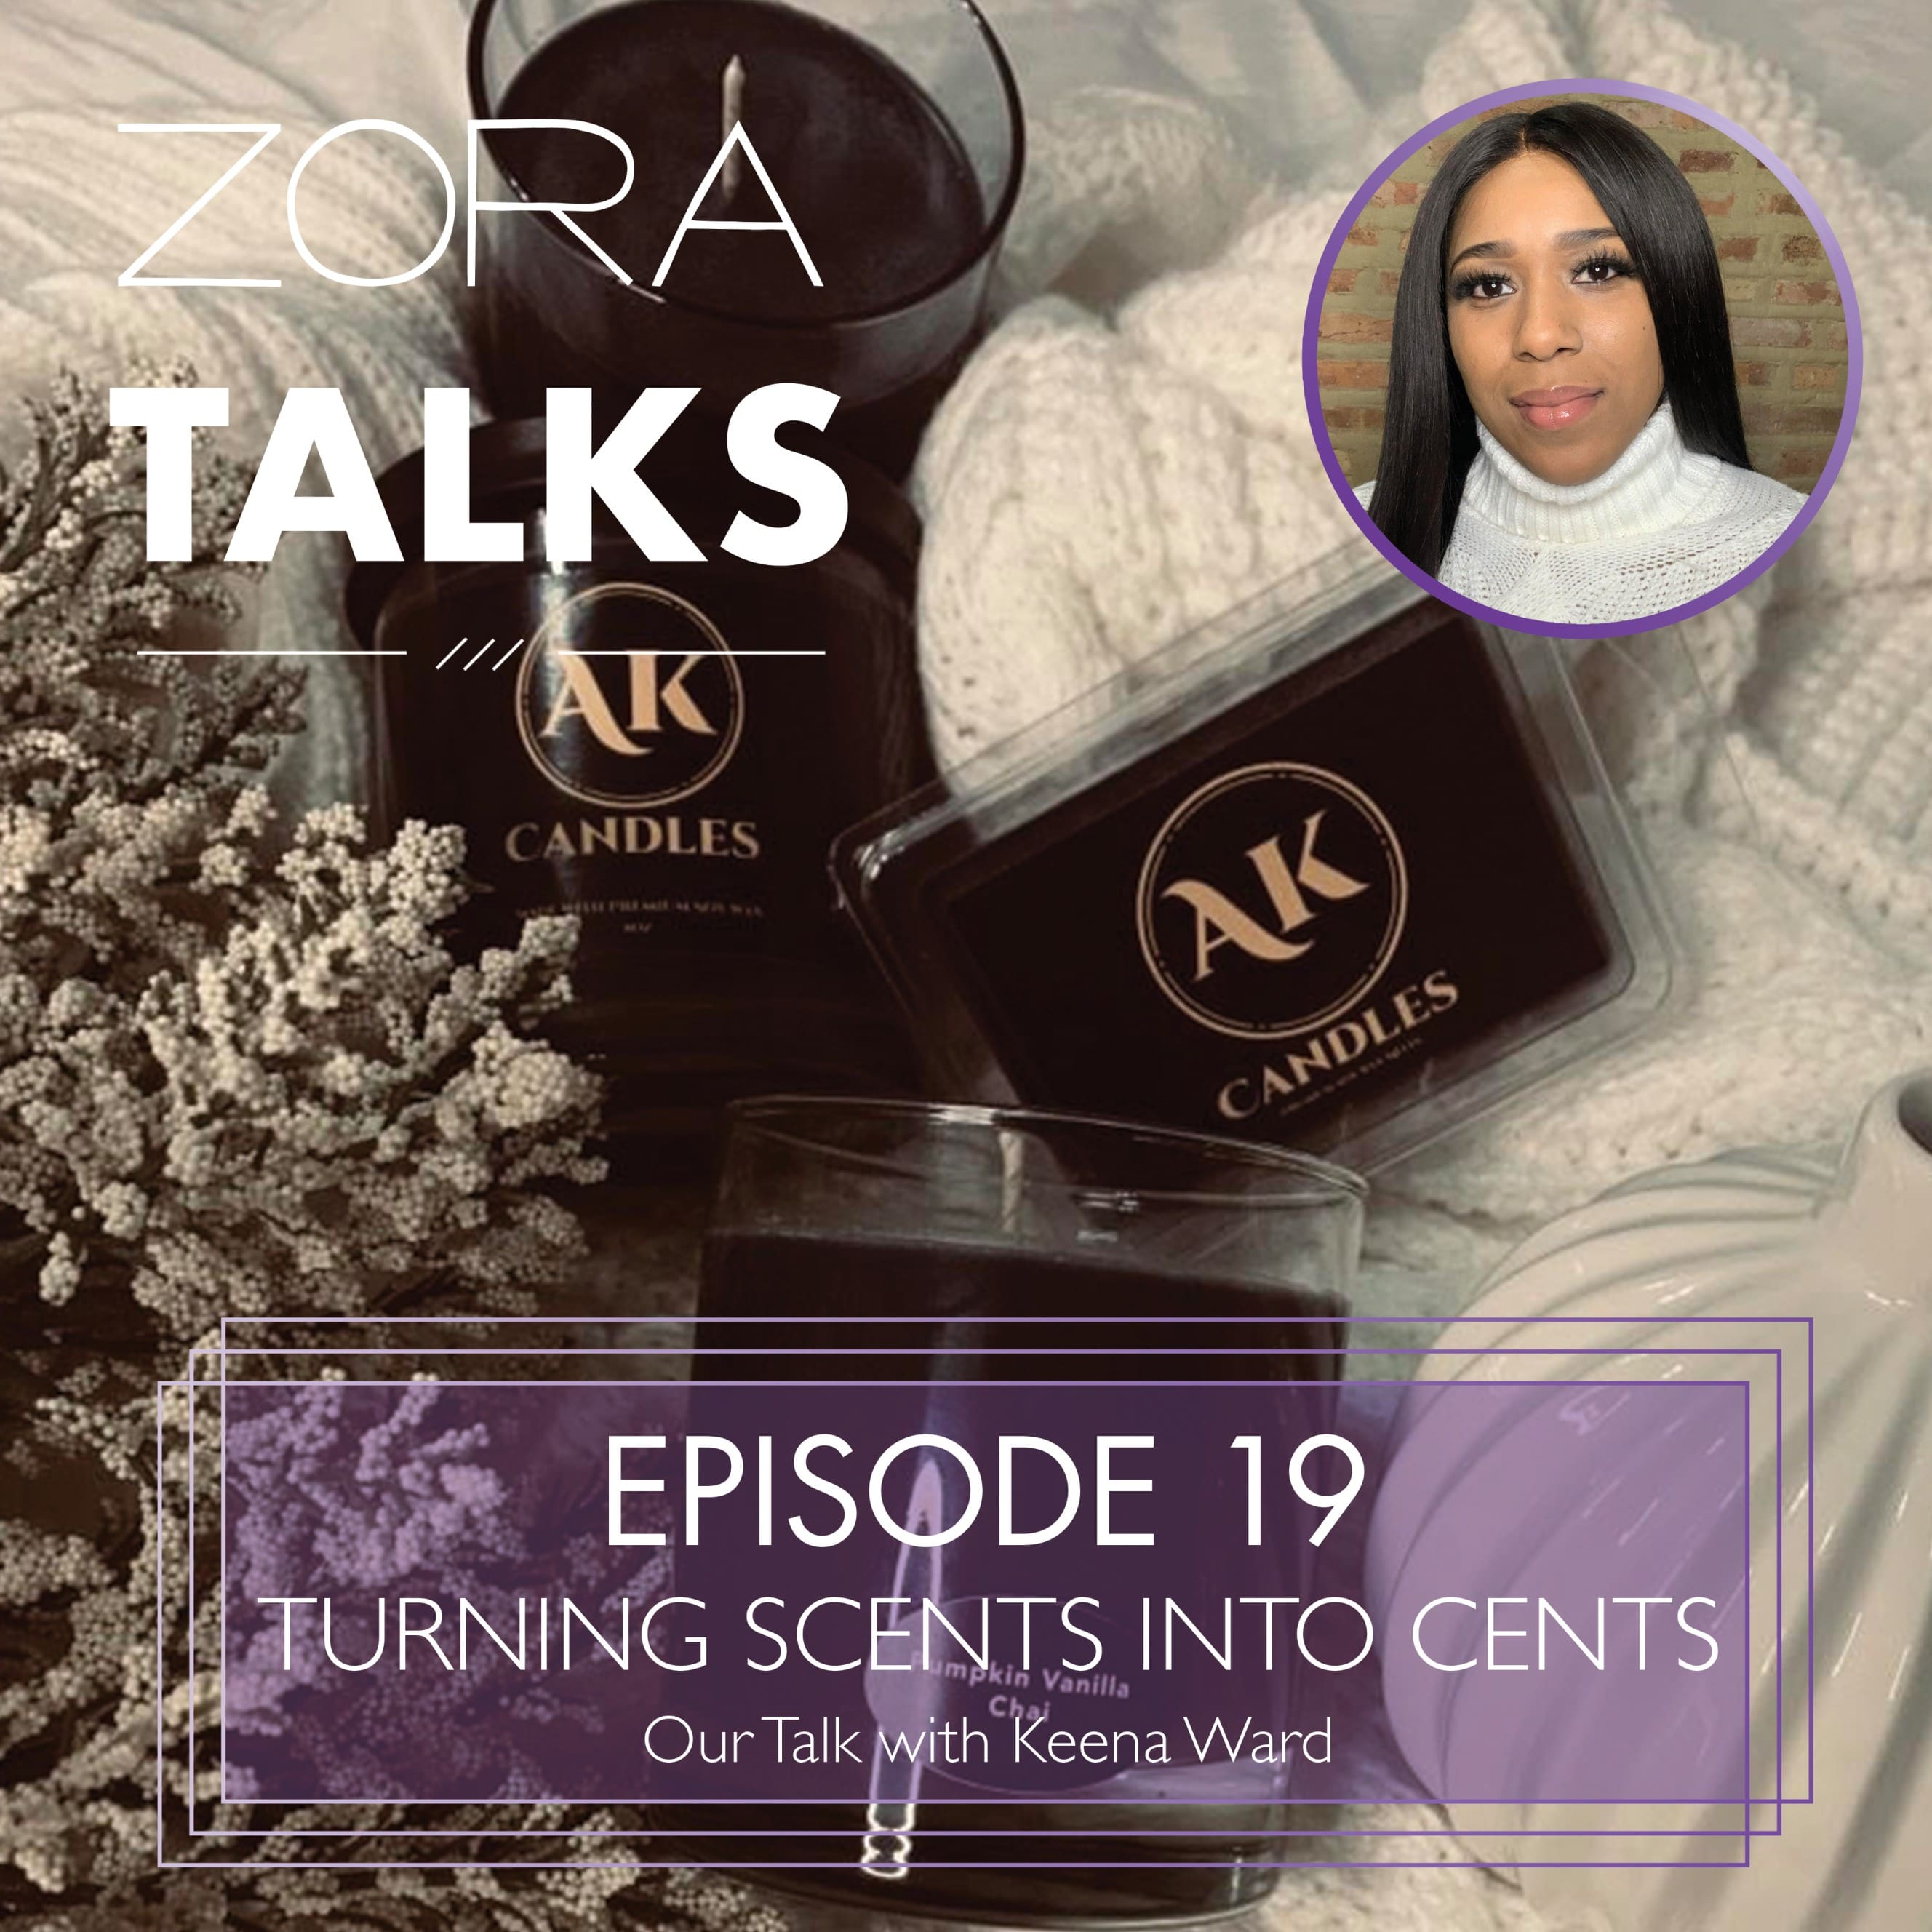 Zora Talks podcast episode 19 - AK Candles